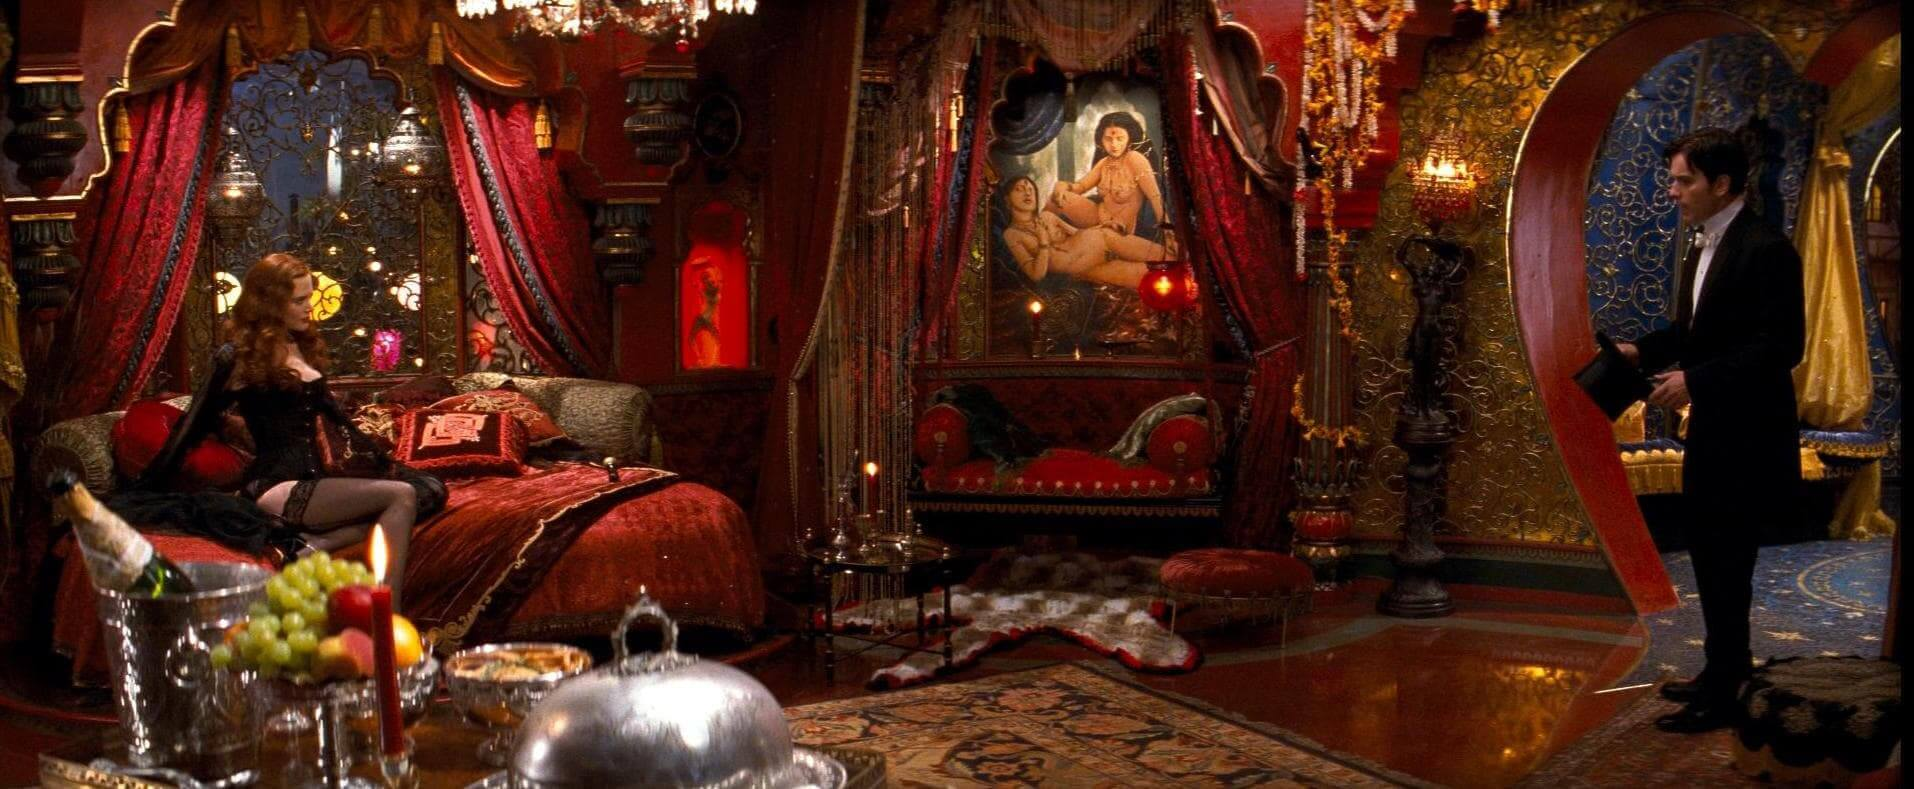 10 Production Design Tips For Filmmakers on a Budget - Moulin Rouge